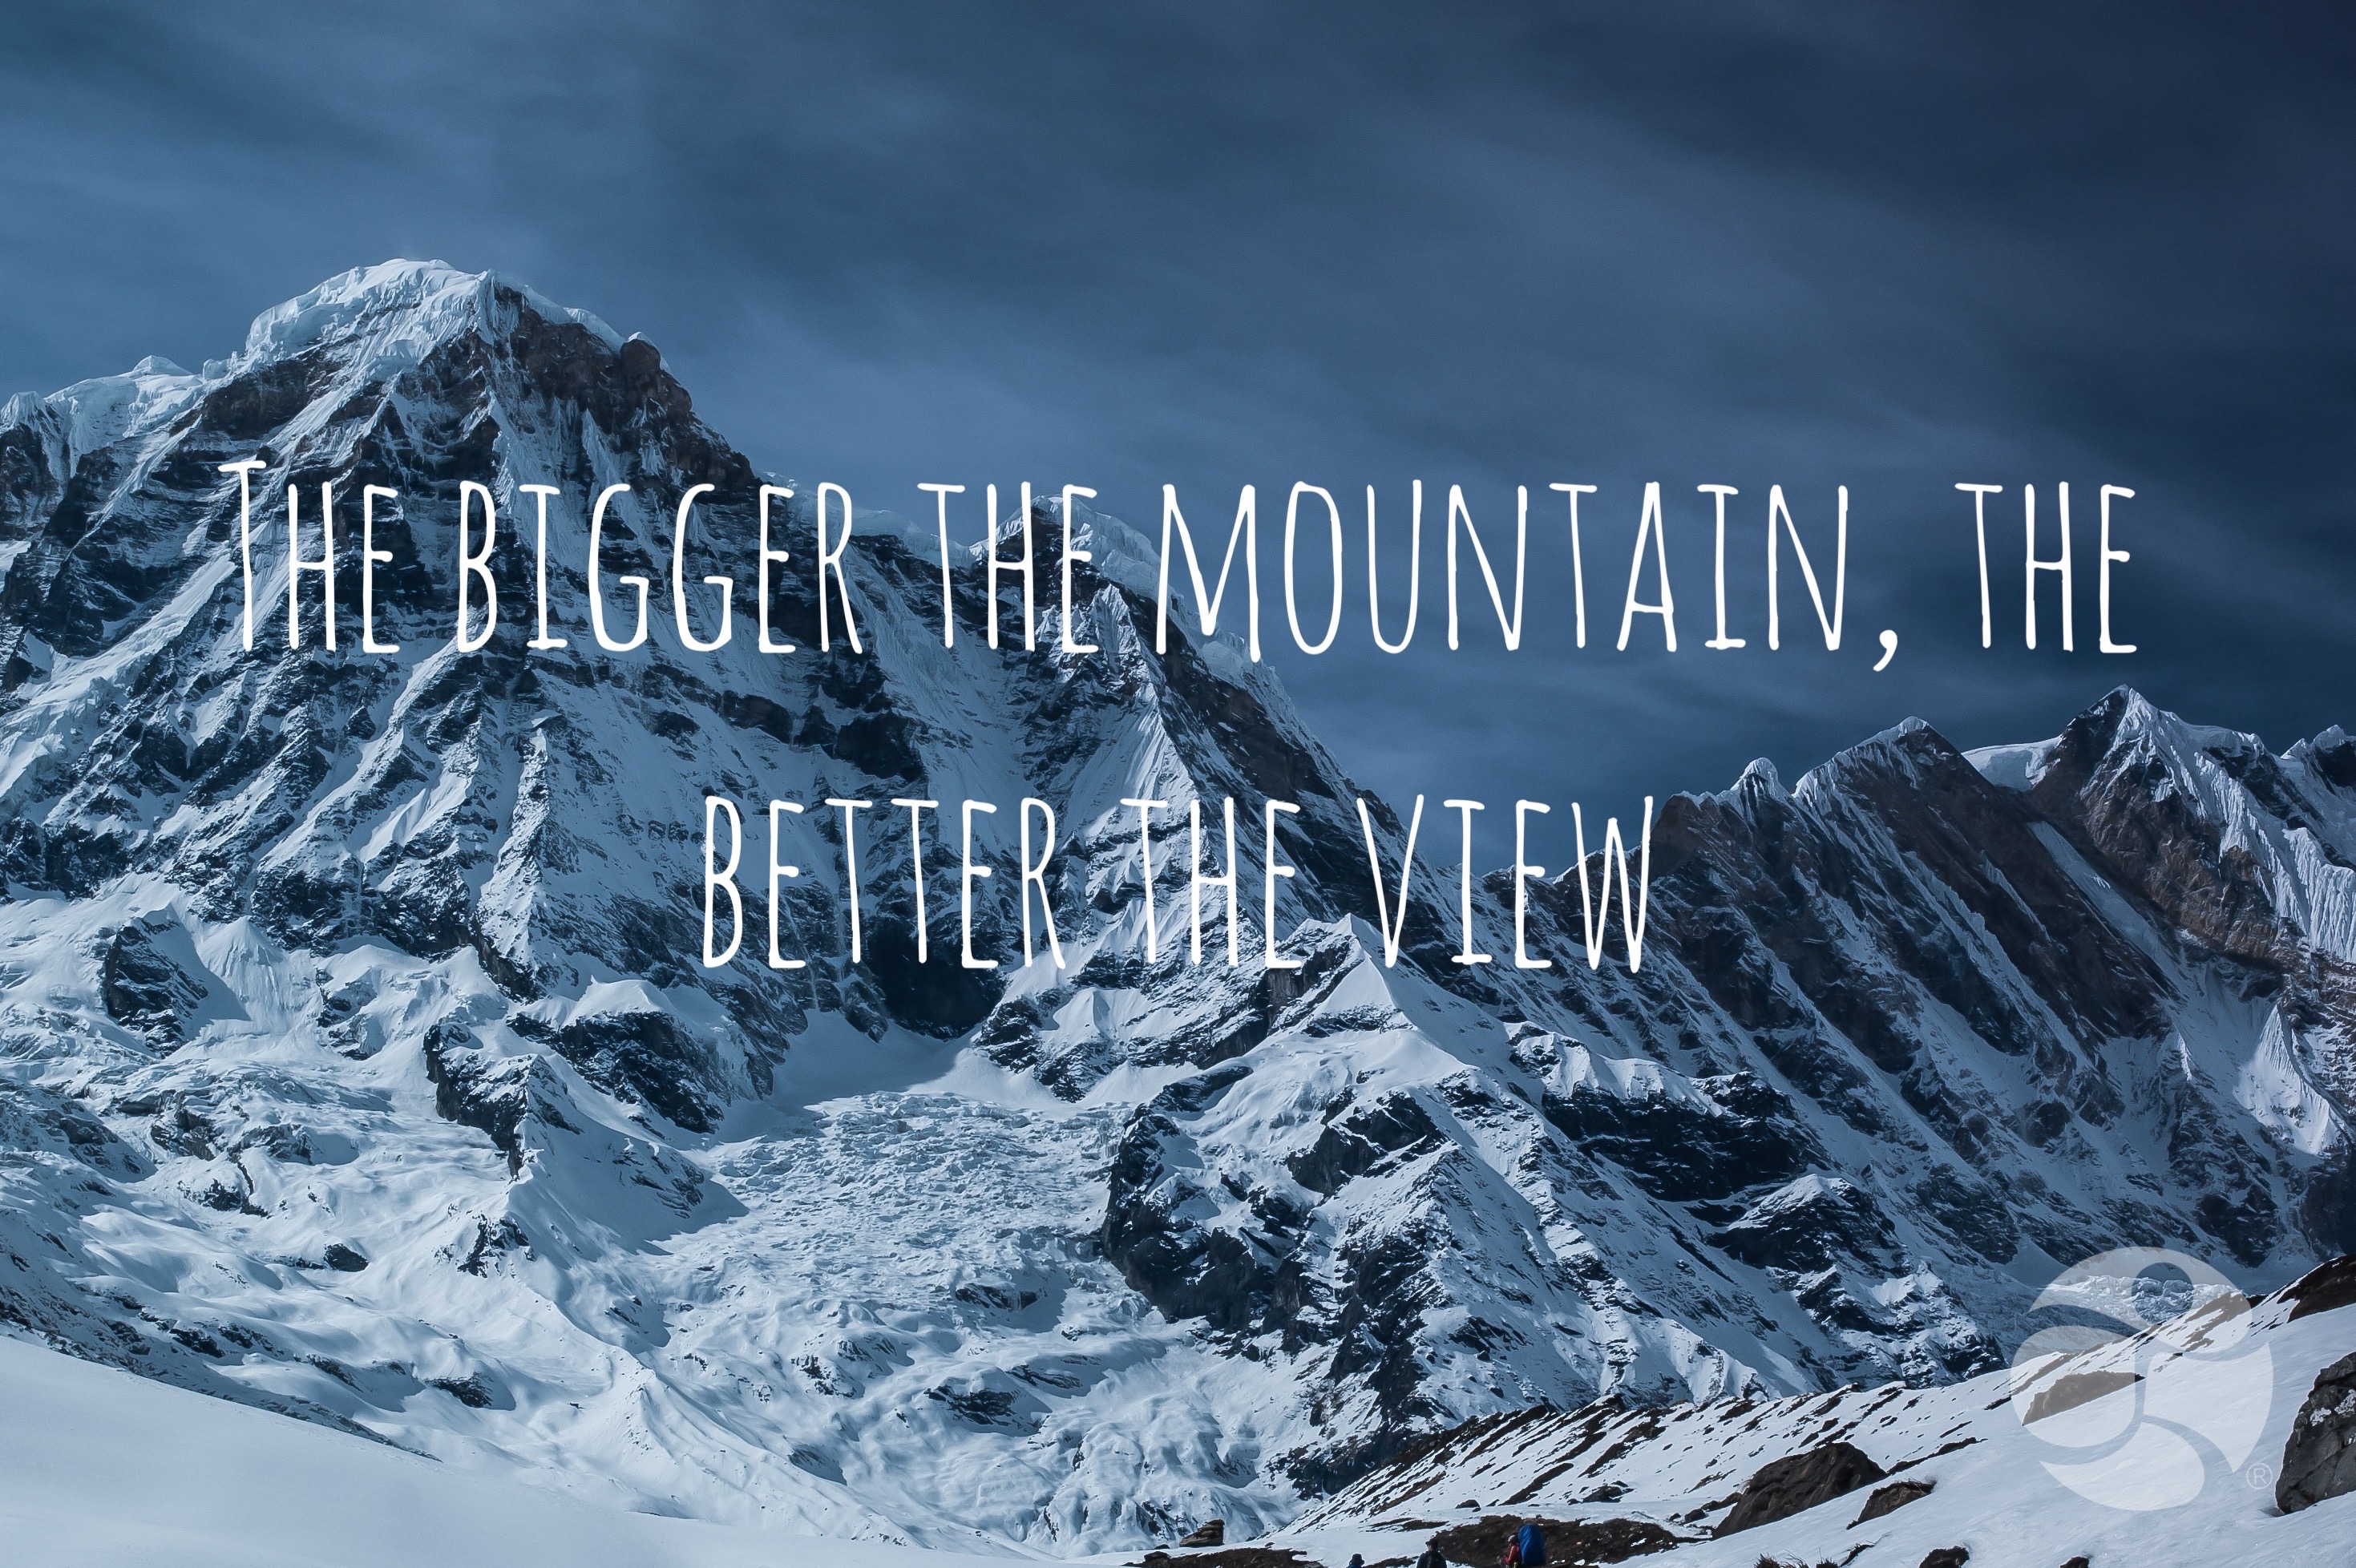 The-bigger-the-mountain-the-better-the-view